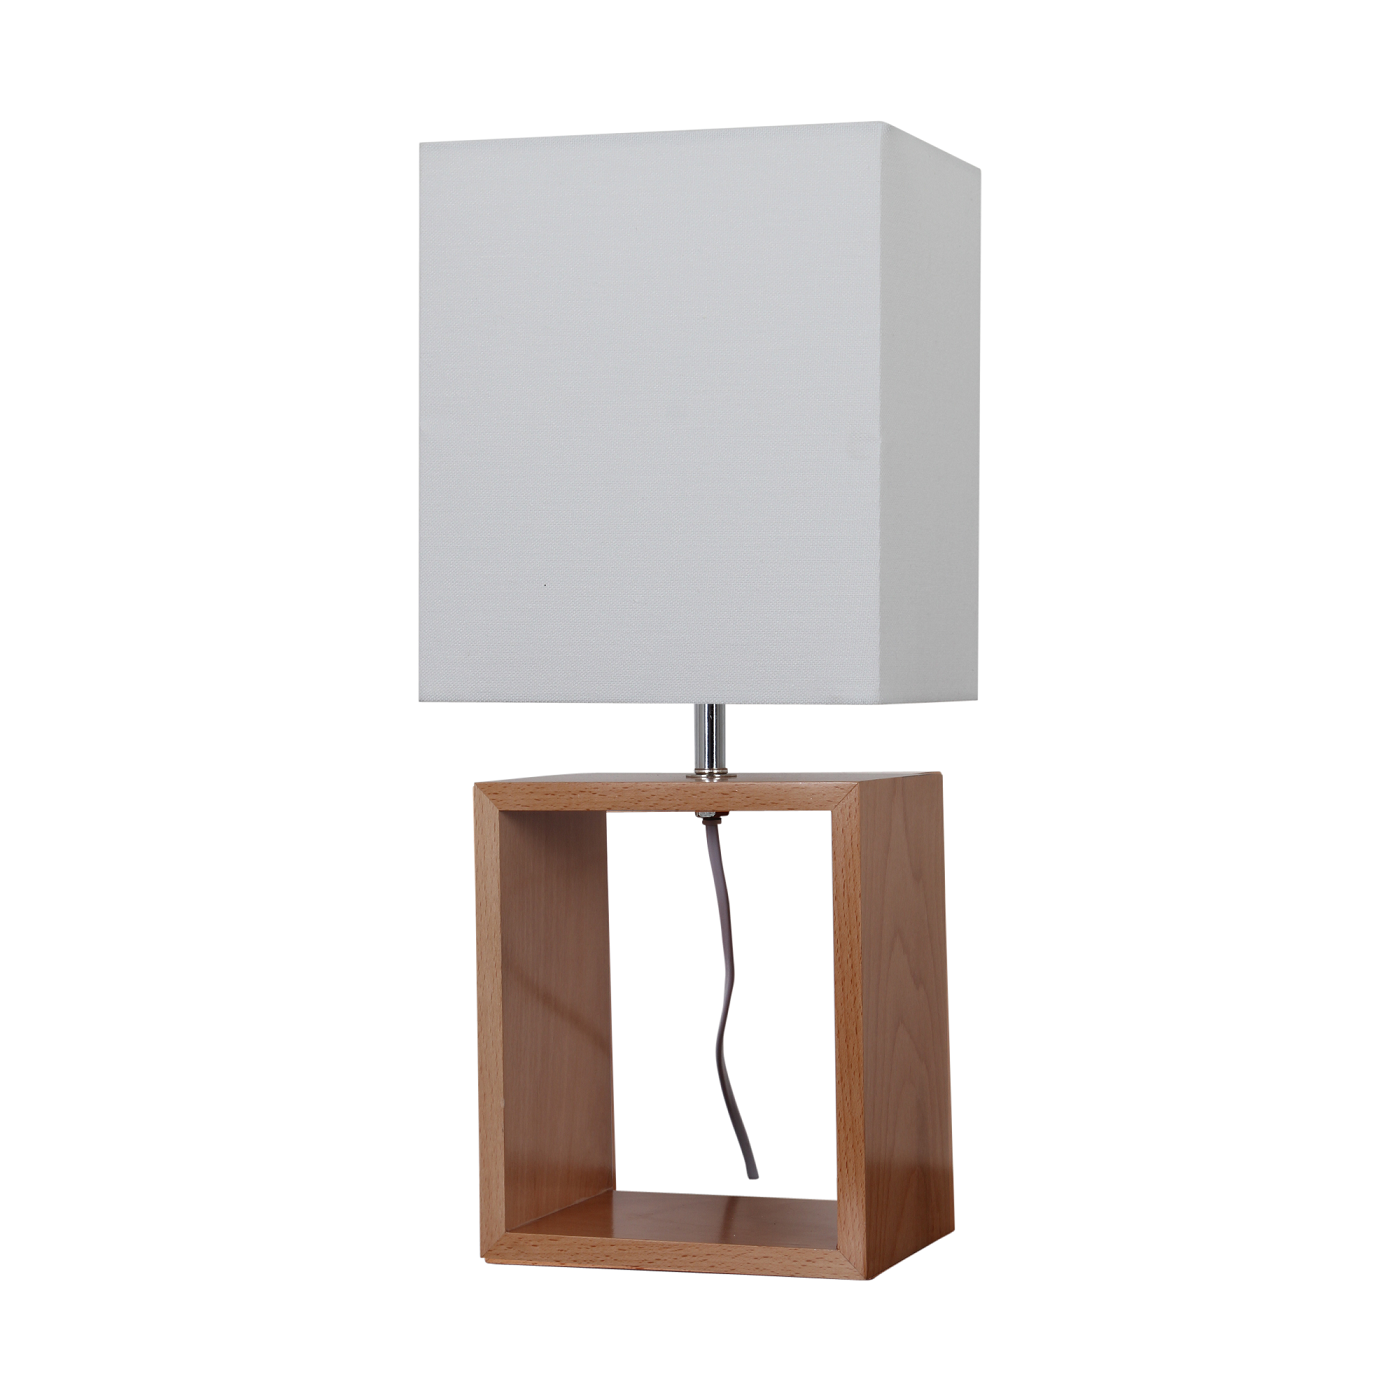 Pair of tall modern wooden cube shaped bedside table lamps for Bedside table lamp shades